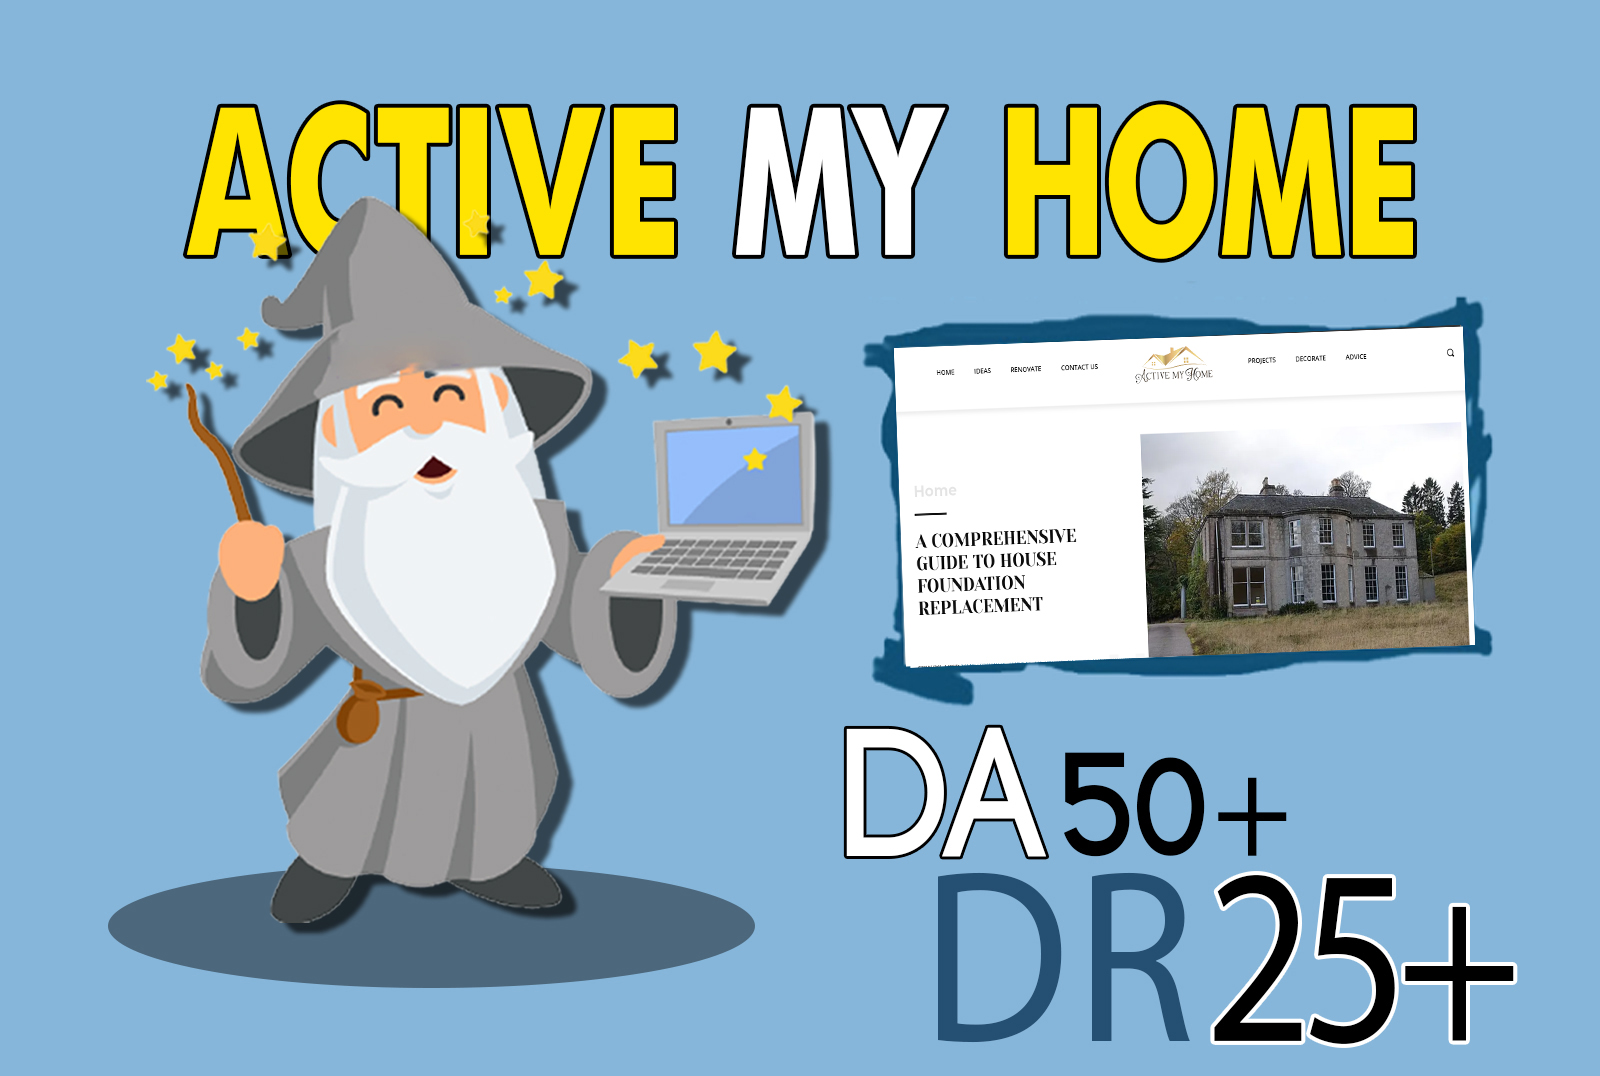 I will do guest post on activemyhome da 50 dofollow backlink